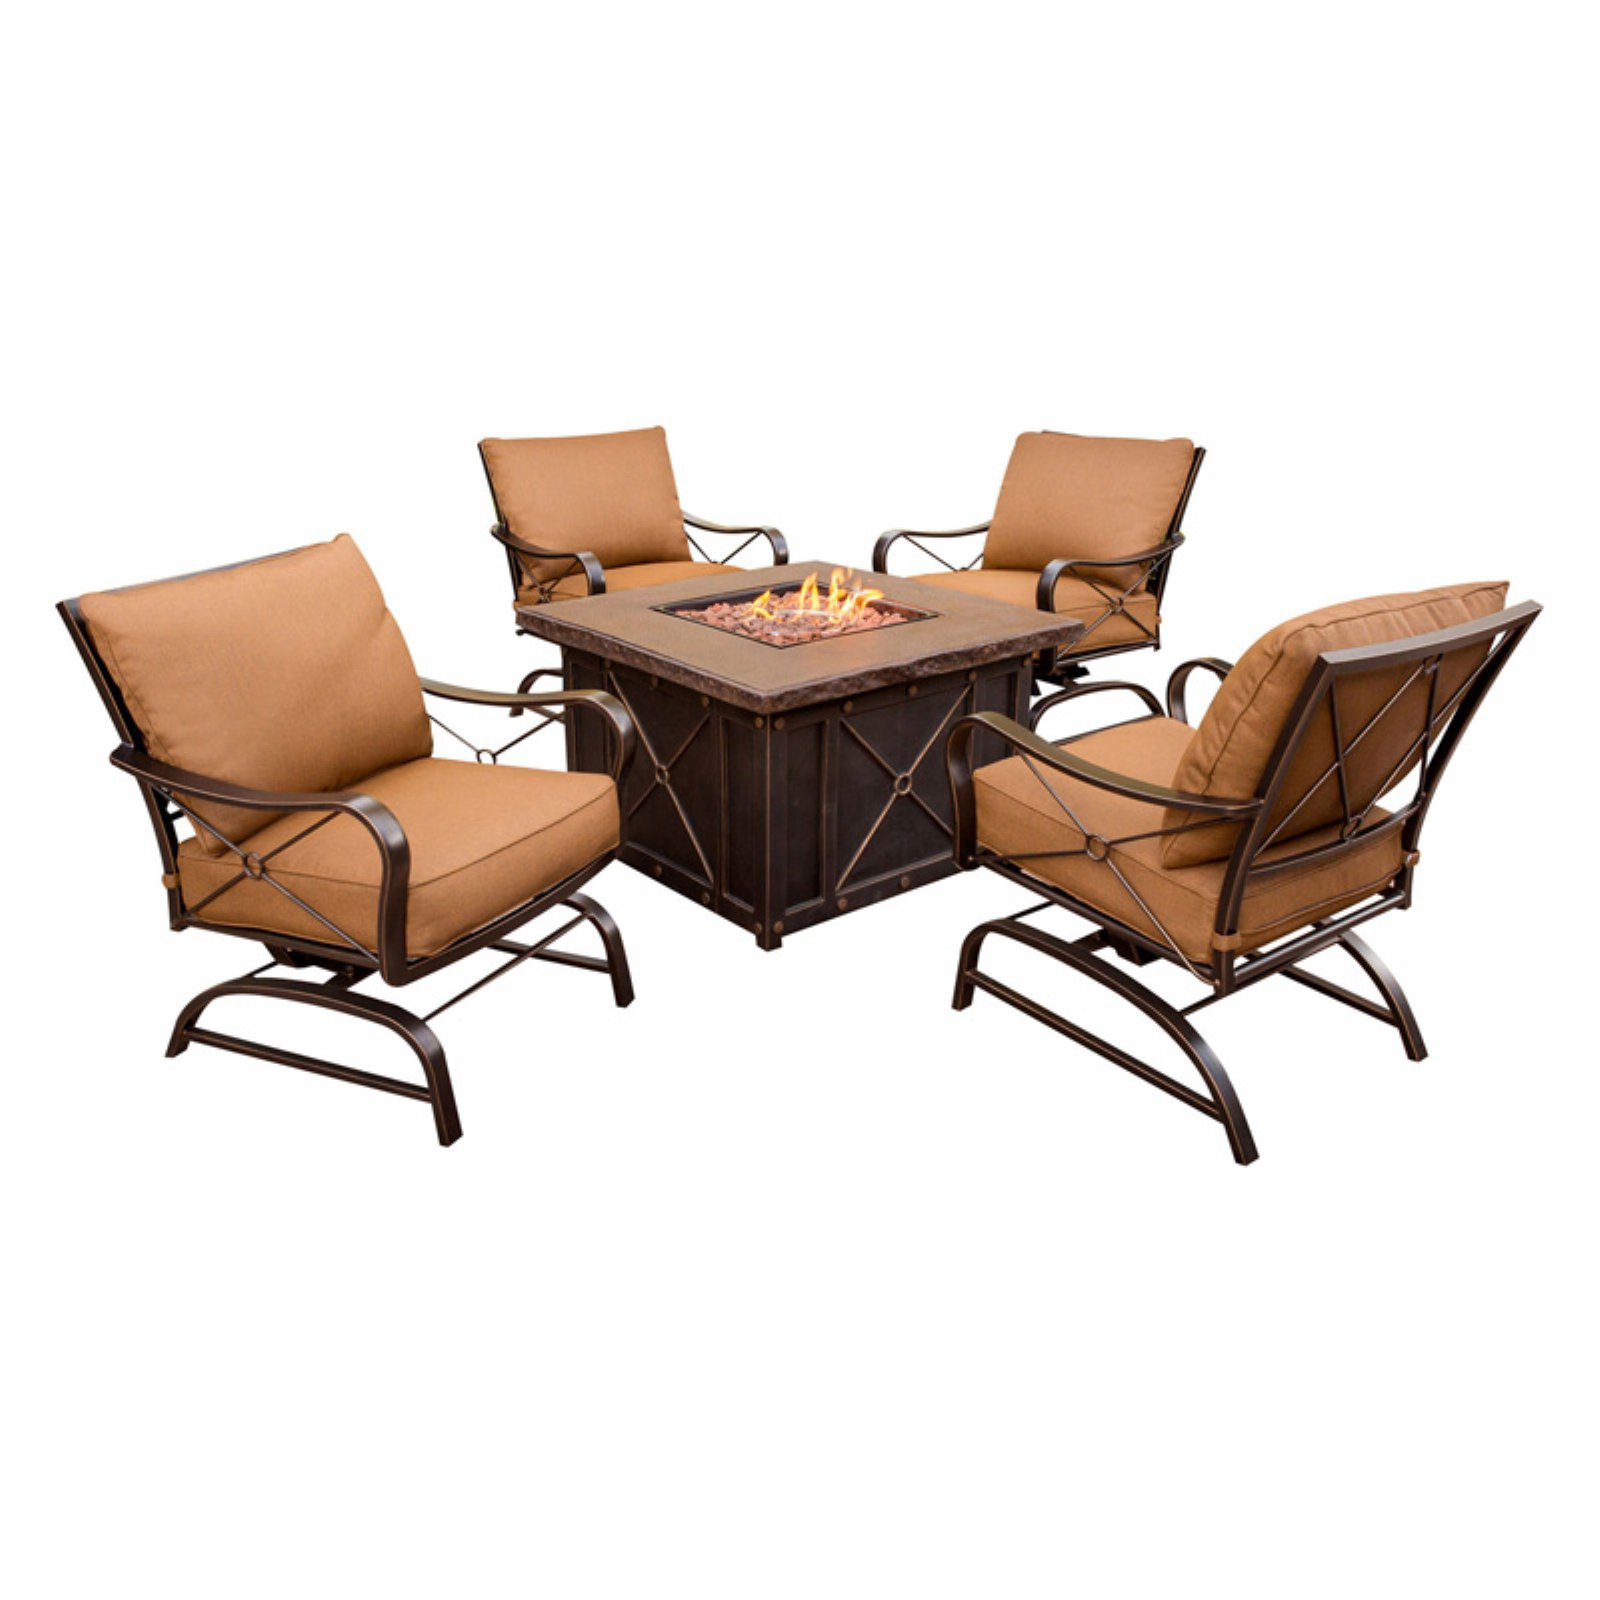 Hanover Outdoor Stone Harbor 5-Piece Fire Pit Lounge Set, Desert Sunset